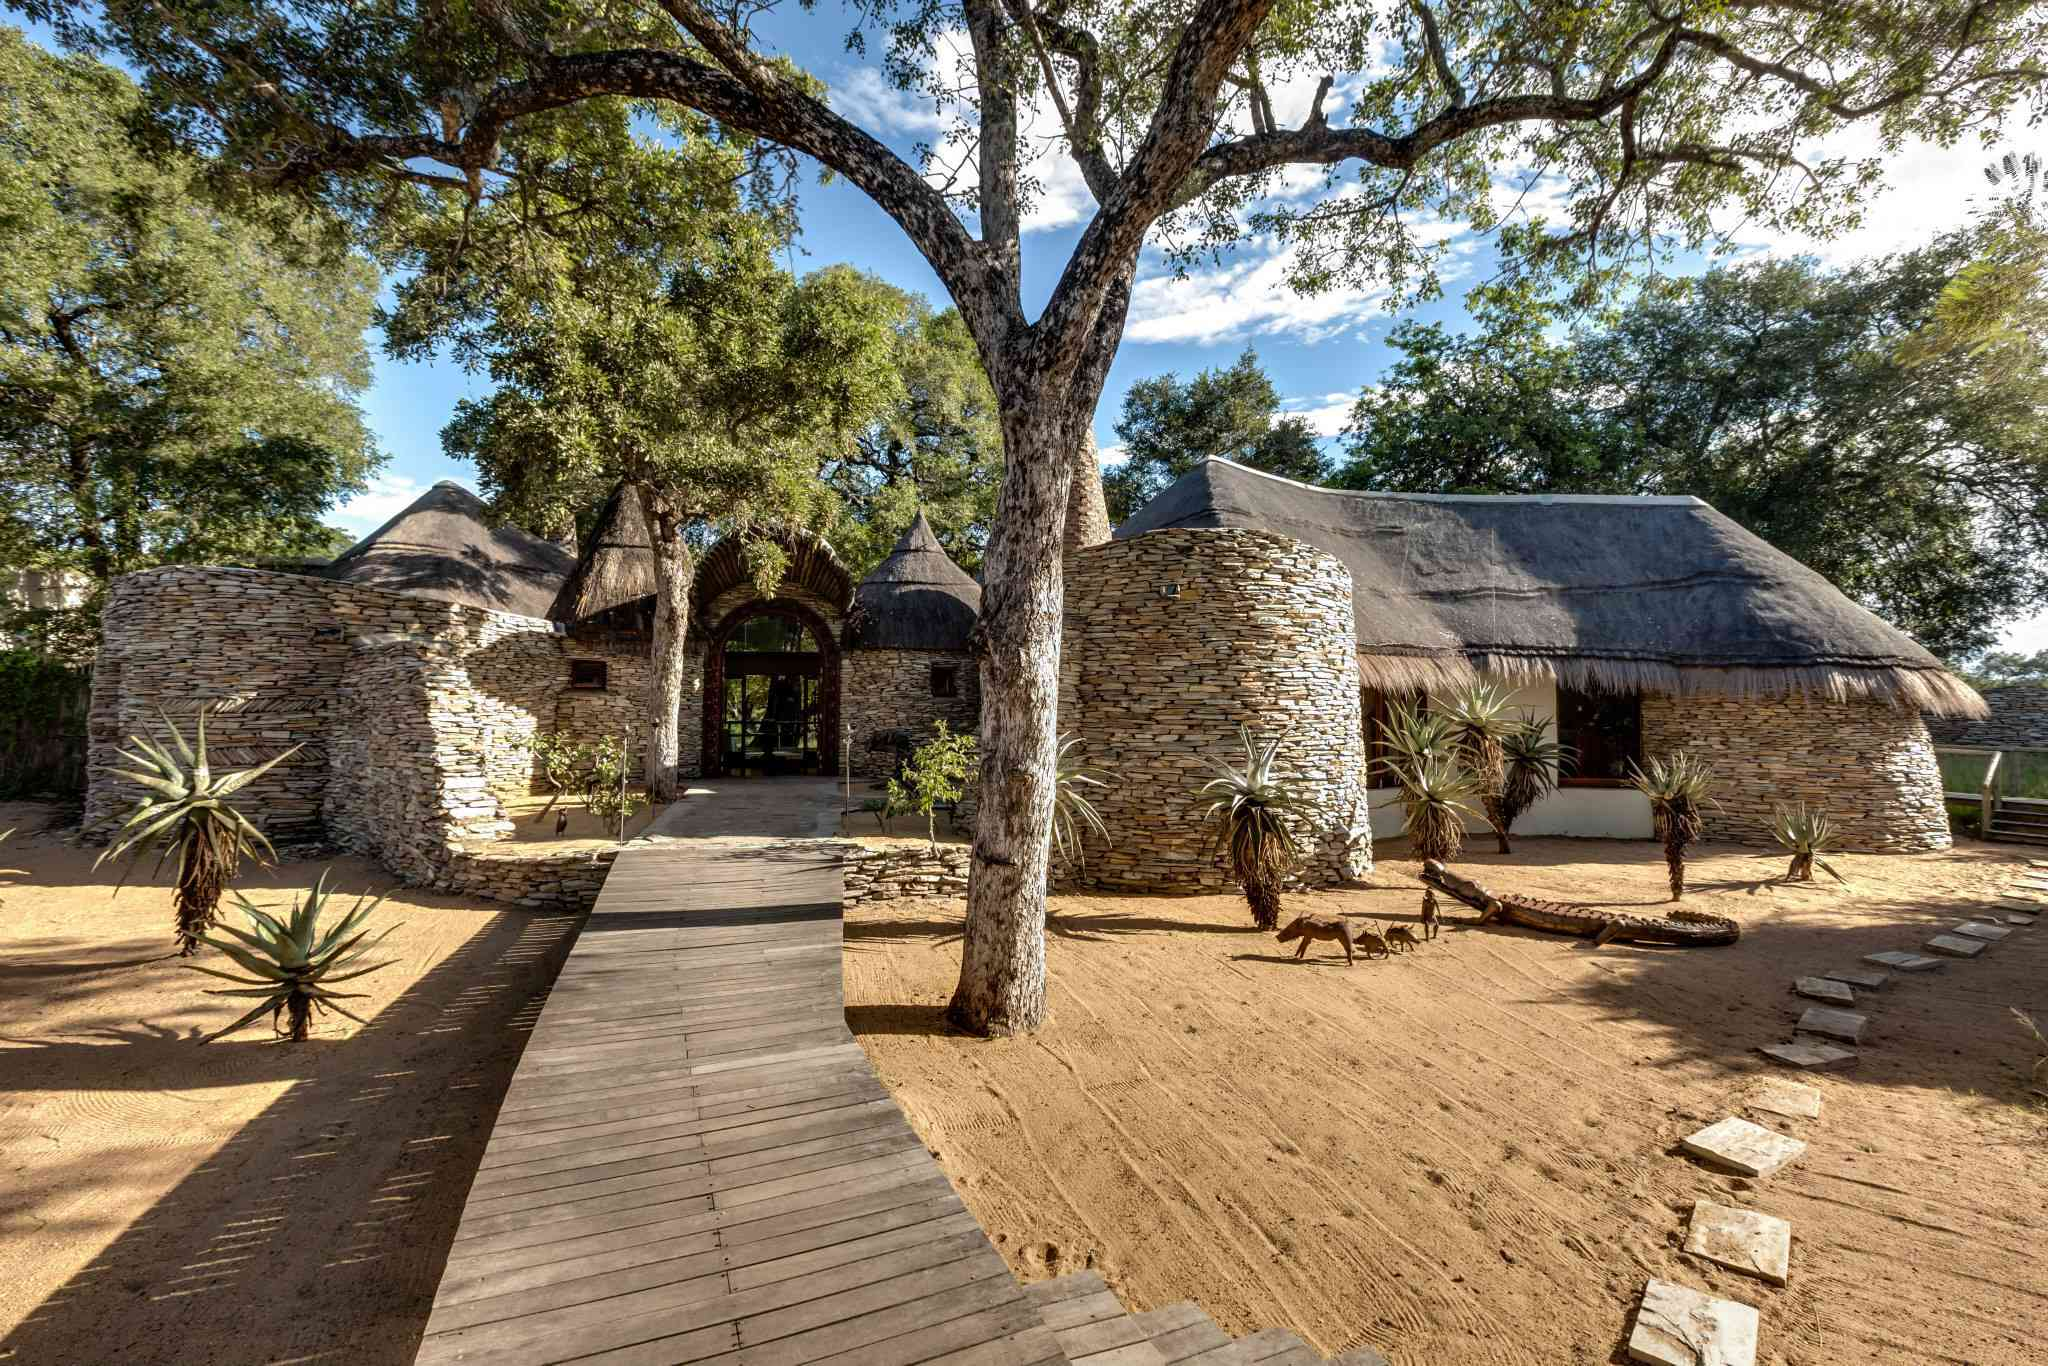 Wooden pathway to a luxury Tintswalo Safari Lodge in South Africa